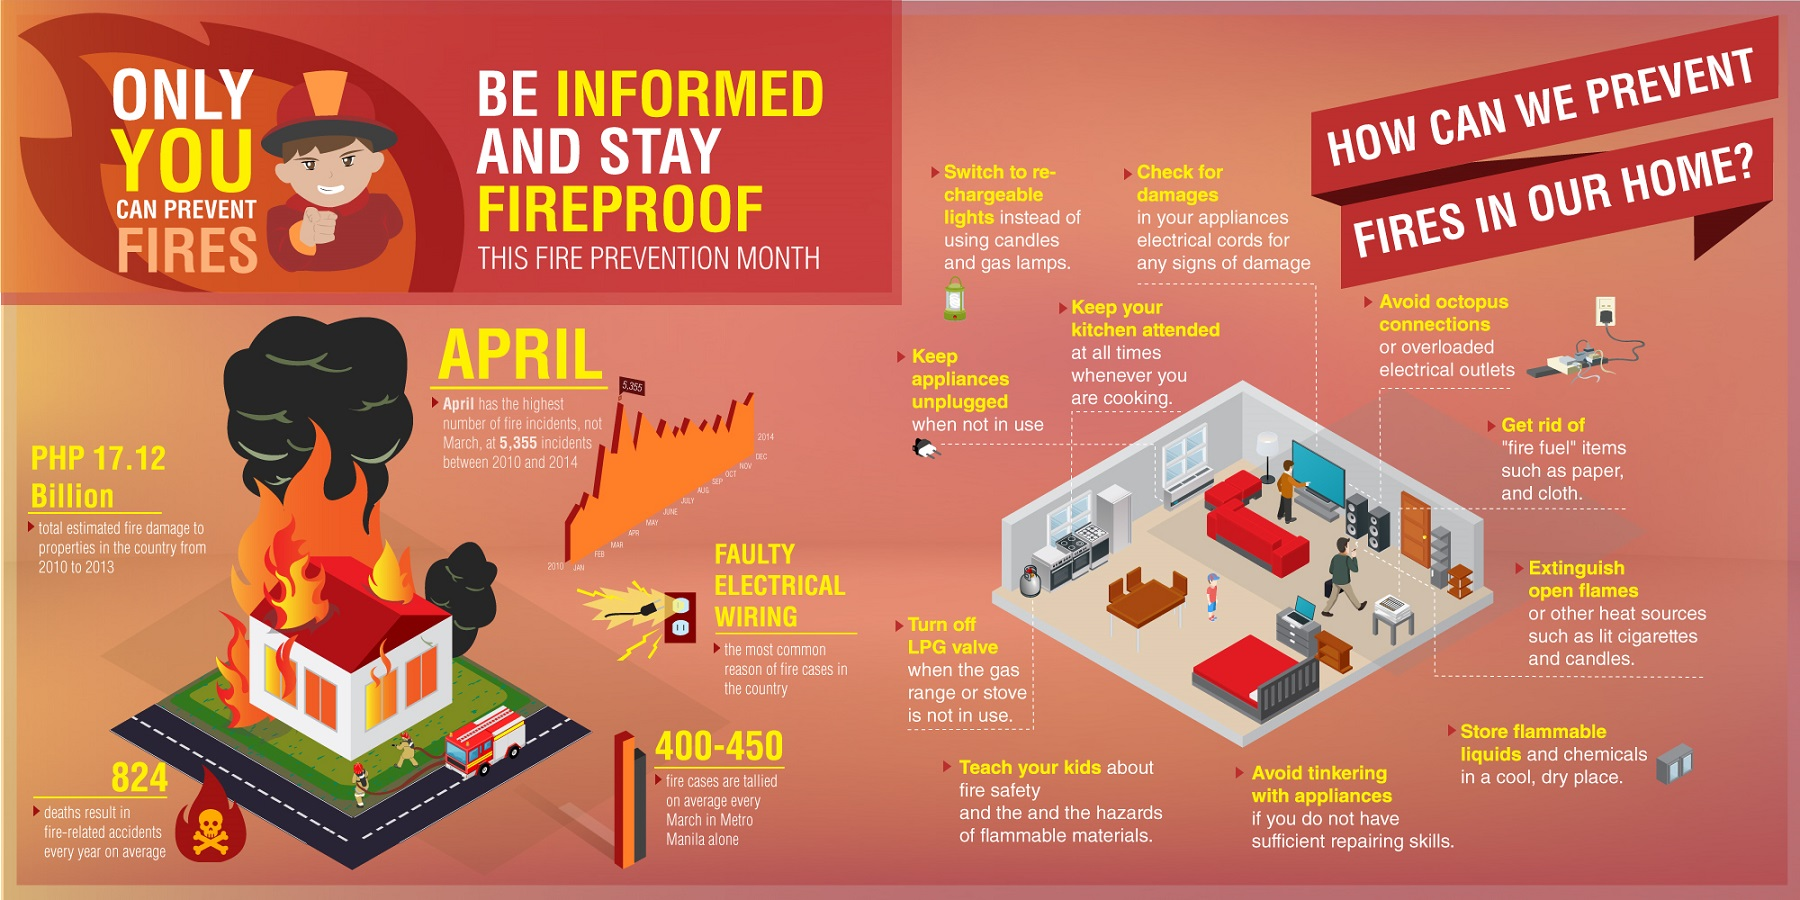 Only You Can Prevent Fires. Be Informed And Stay Fireproof This Fire Prevention Month